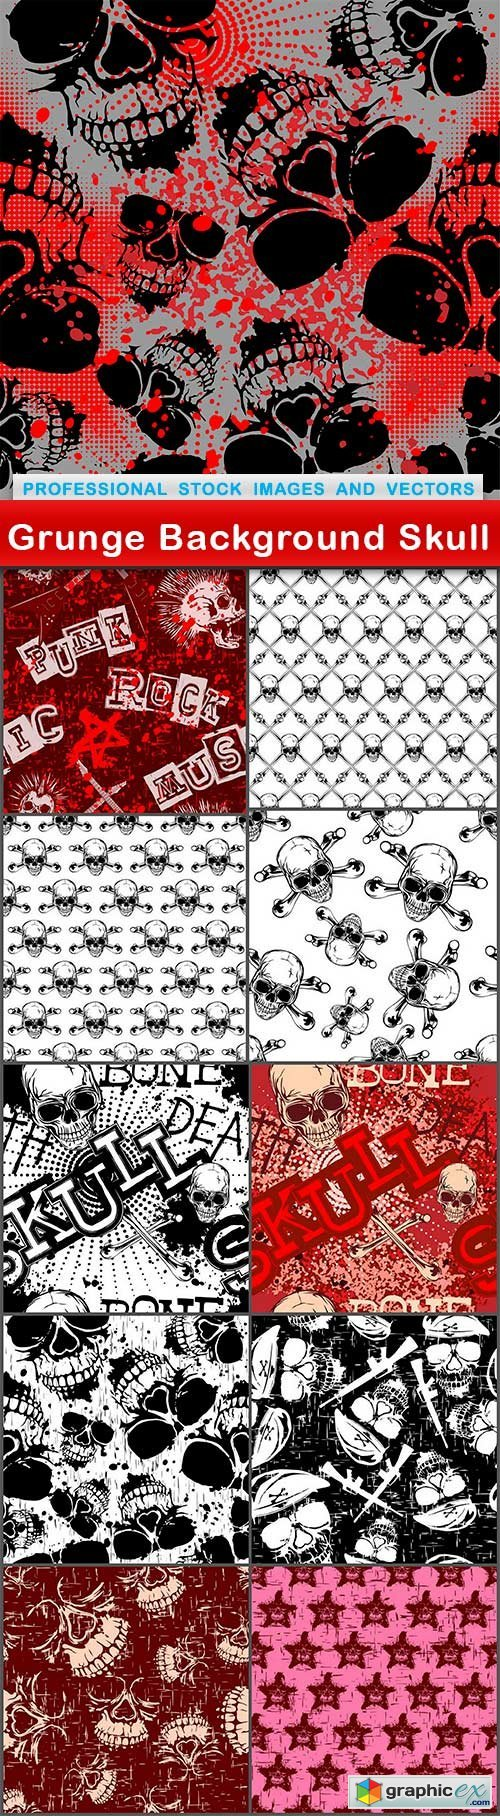 Grunge Background Skull - 11 EPS